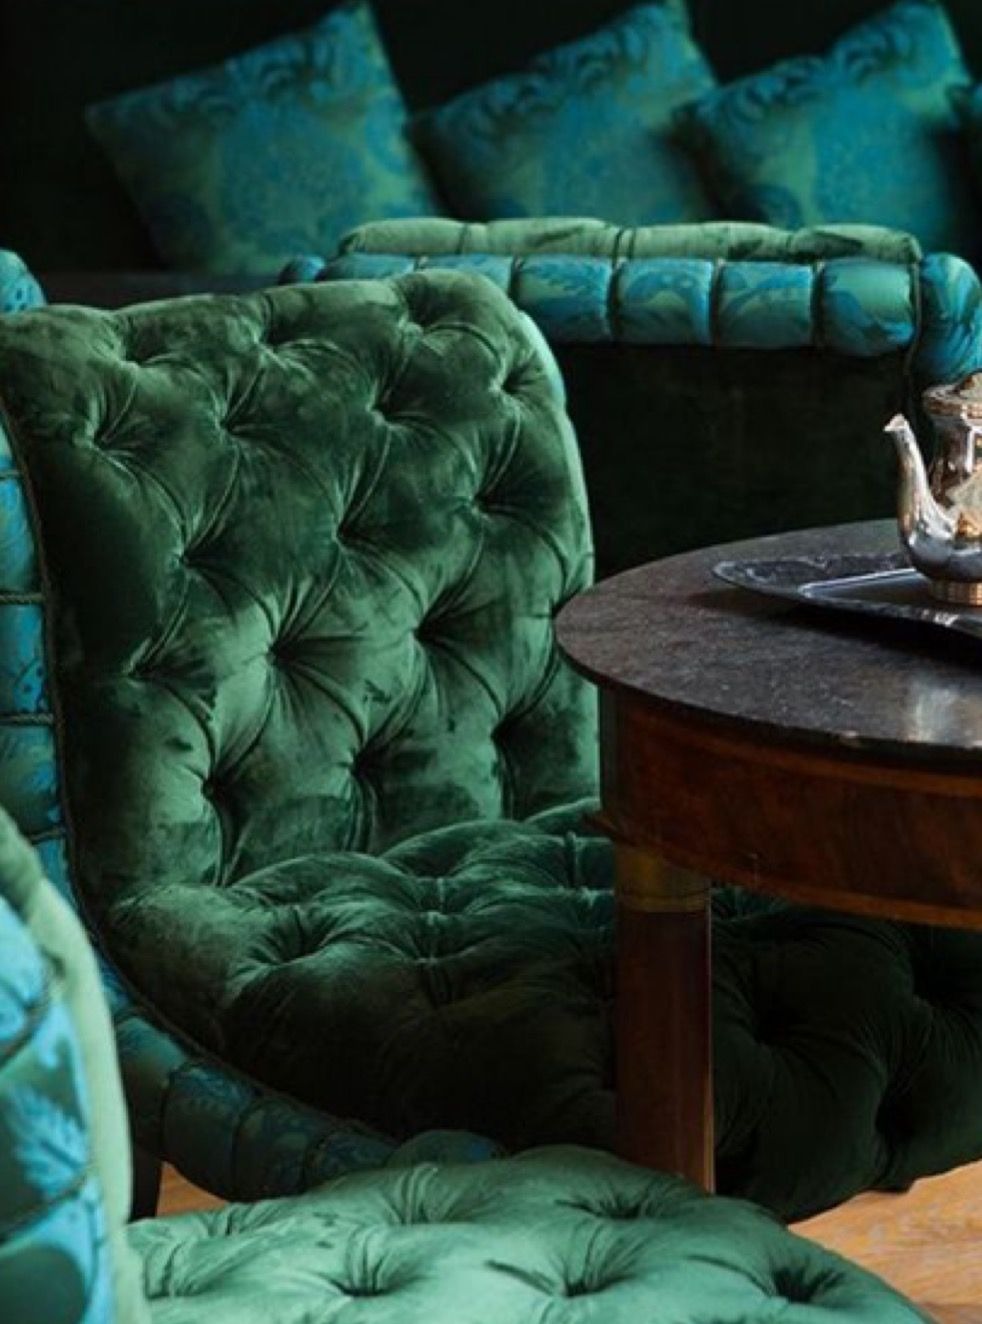 Pin By Ultruism On Uptown Jade S Penthouse Slytherin Aesthetic Green Rooms Shades Of Green